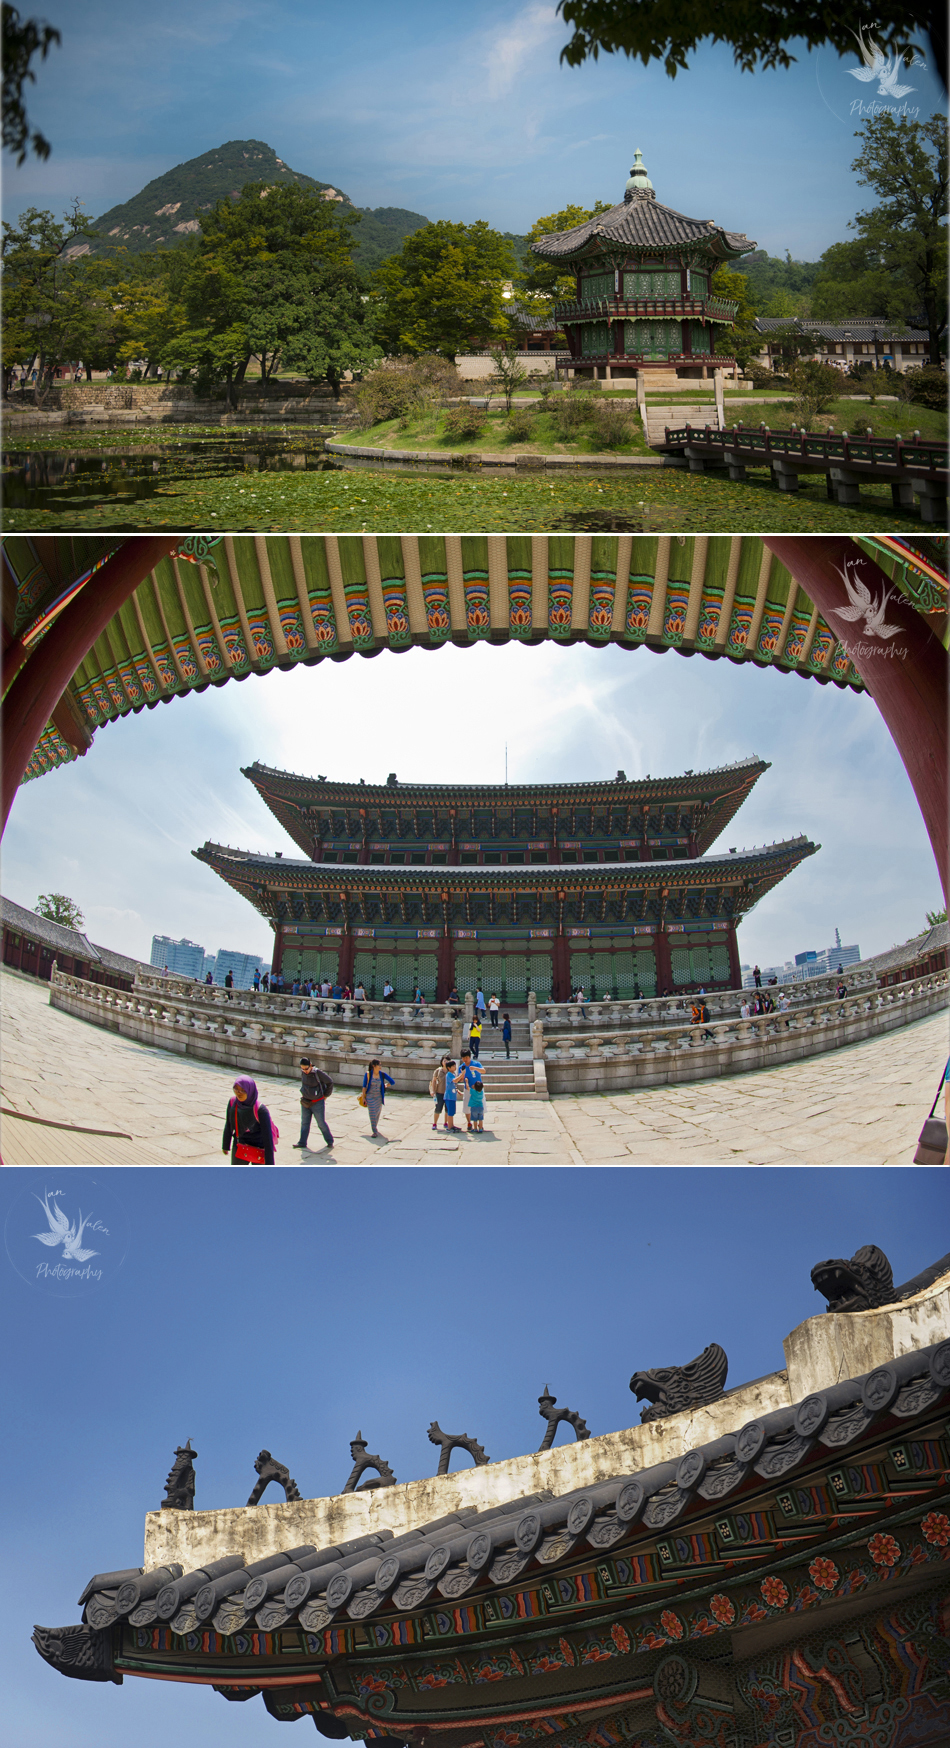 scenes from Gyeongbokgung